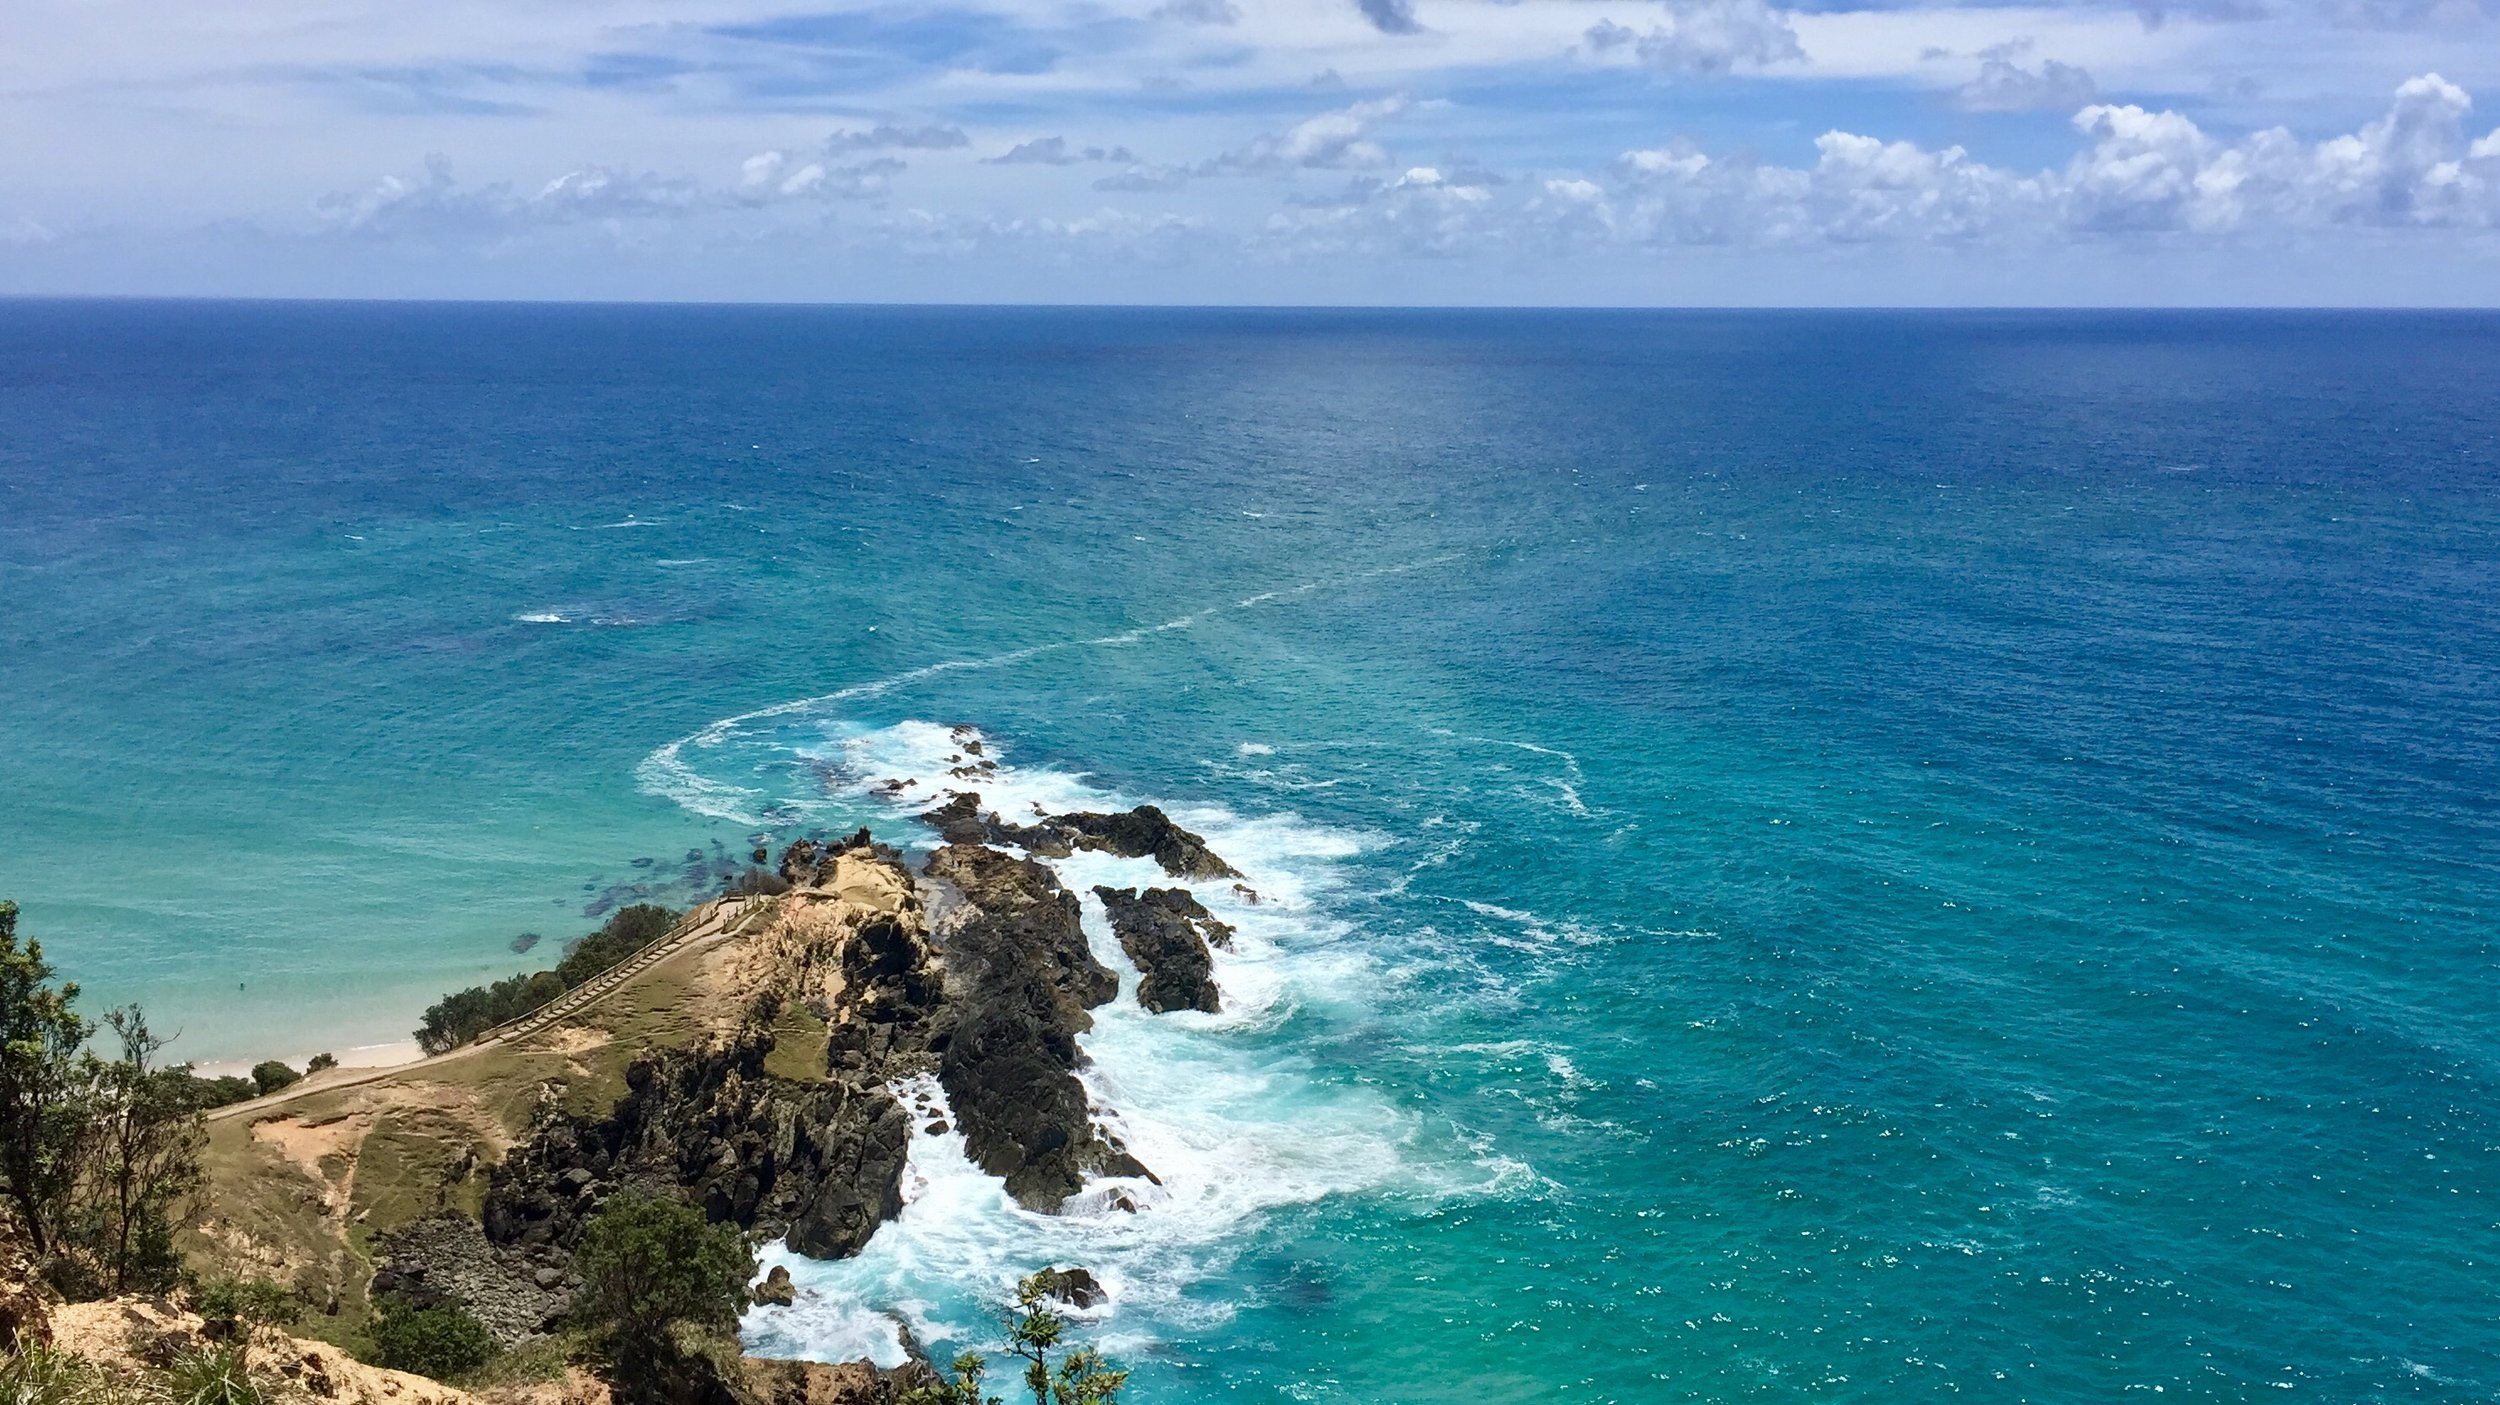 This is beautiful Byron Bay